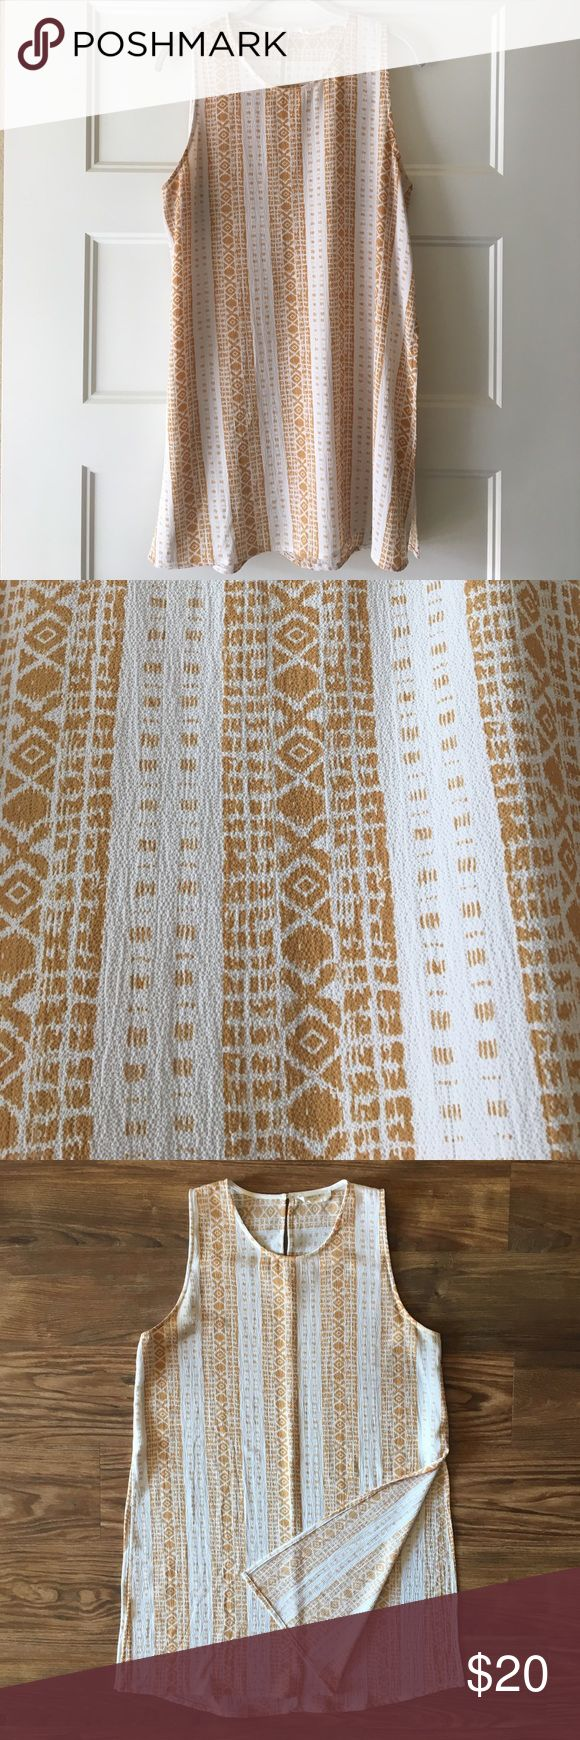 """Sophie Rue Aztec Print Tunic in Mustard Yellow Beautiful print, flattering cut, excellent tunic! 32"""" length and 15"""" slits up each side. Perfect to layer with shorts or leggings in any season. Any other measurements happily provided upon request. Tops Tunics"""